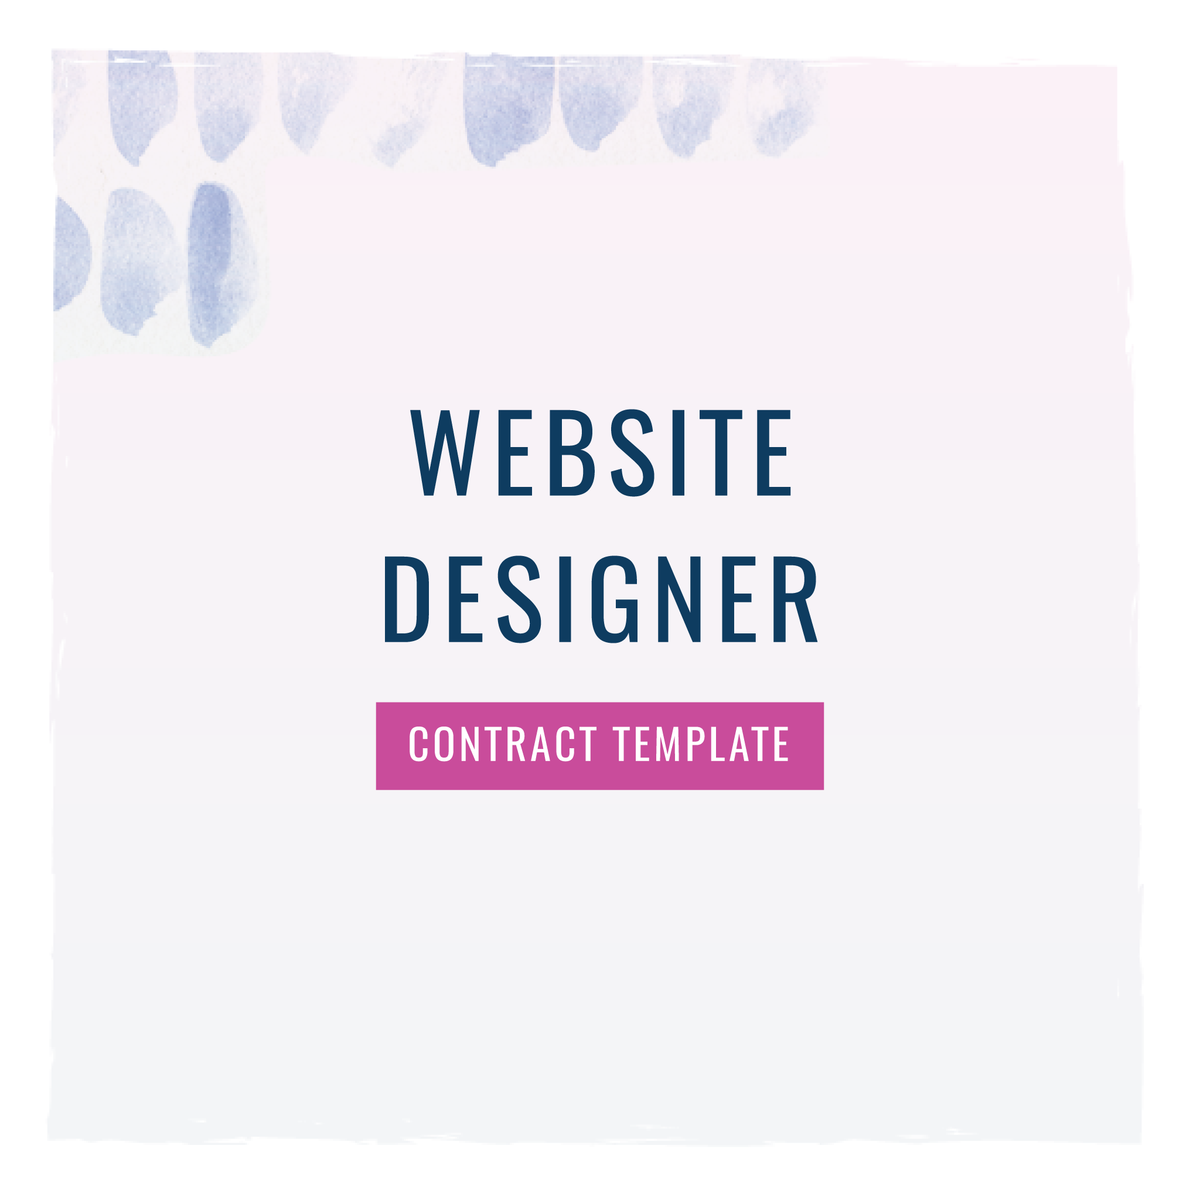 WebsiteDesigner_1200x.png